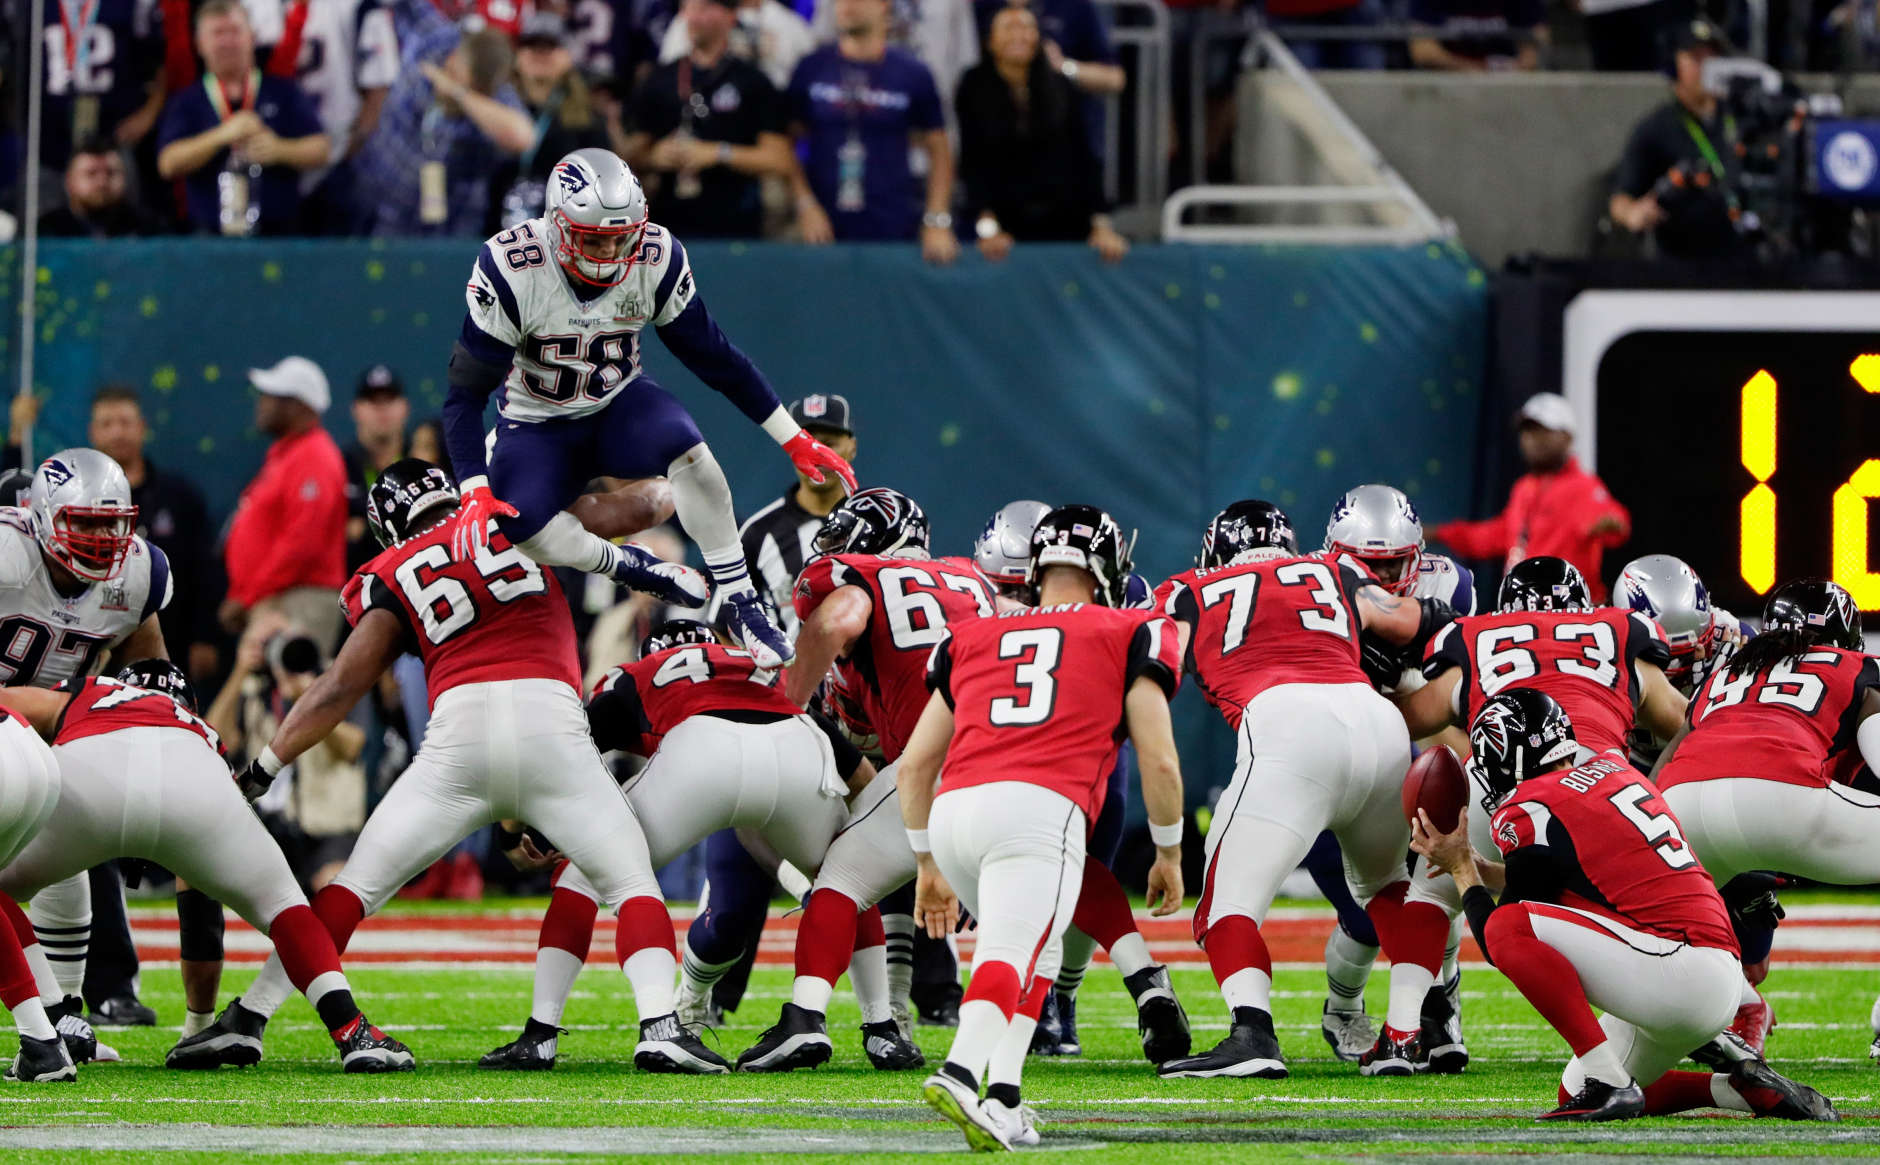 HOUSTON, TX - FEBRUARY 05:  Shea McClellin #58 of the New England Patriots attempts to block a point after try in the second quarter against the Atlanta Falcons during Super Bowl 51 at NRG Stadium on February 5, 2017 in Houston, Texas. The play resulted in a 5-yard penalty against the New England Patriots for an illegal formation.  (Photo by Jamie Squire/Getty Images)